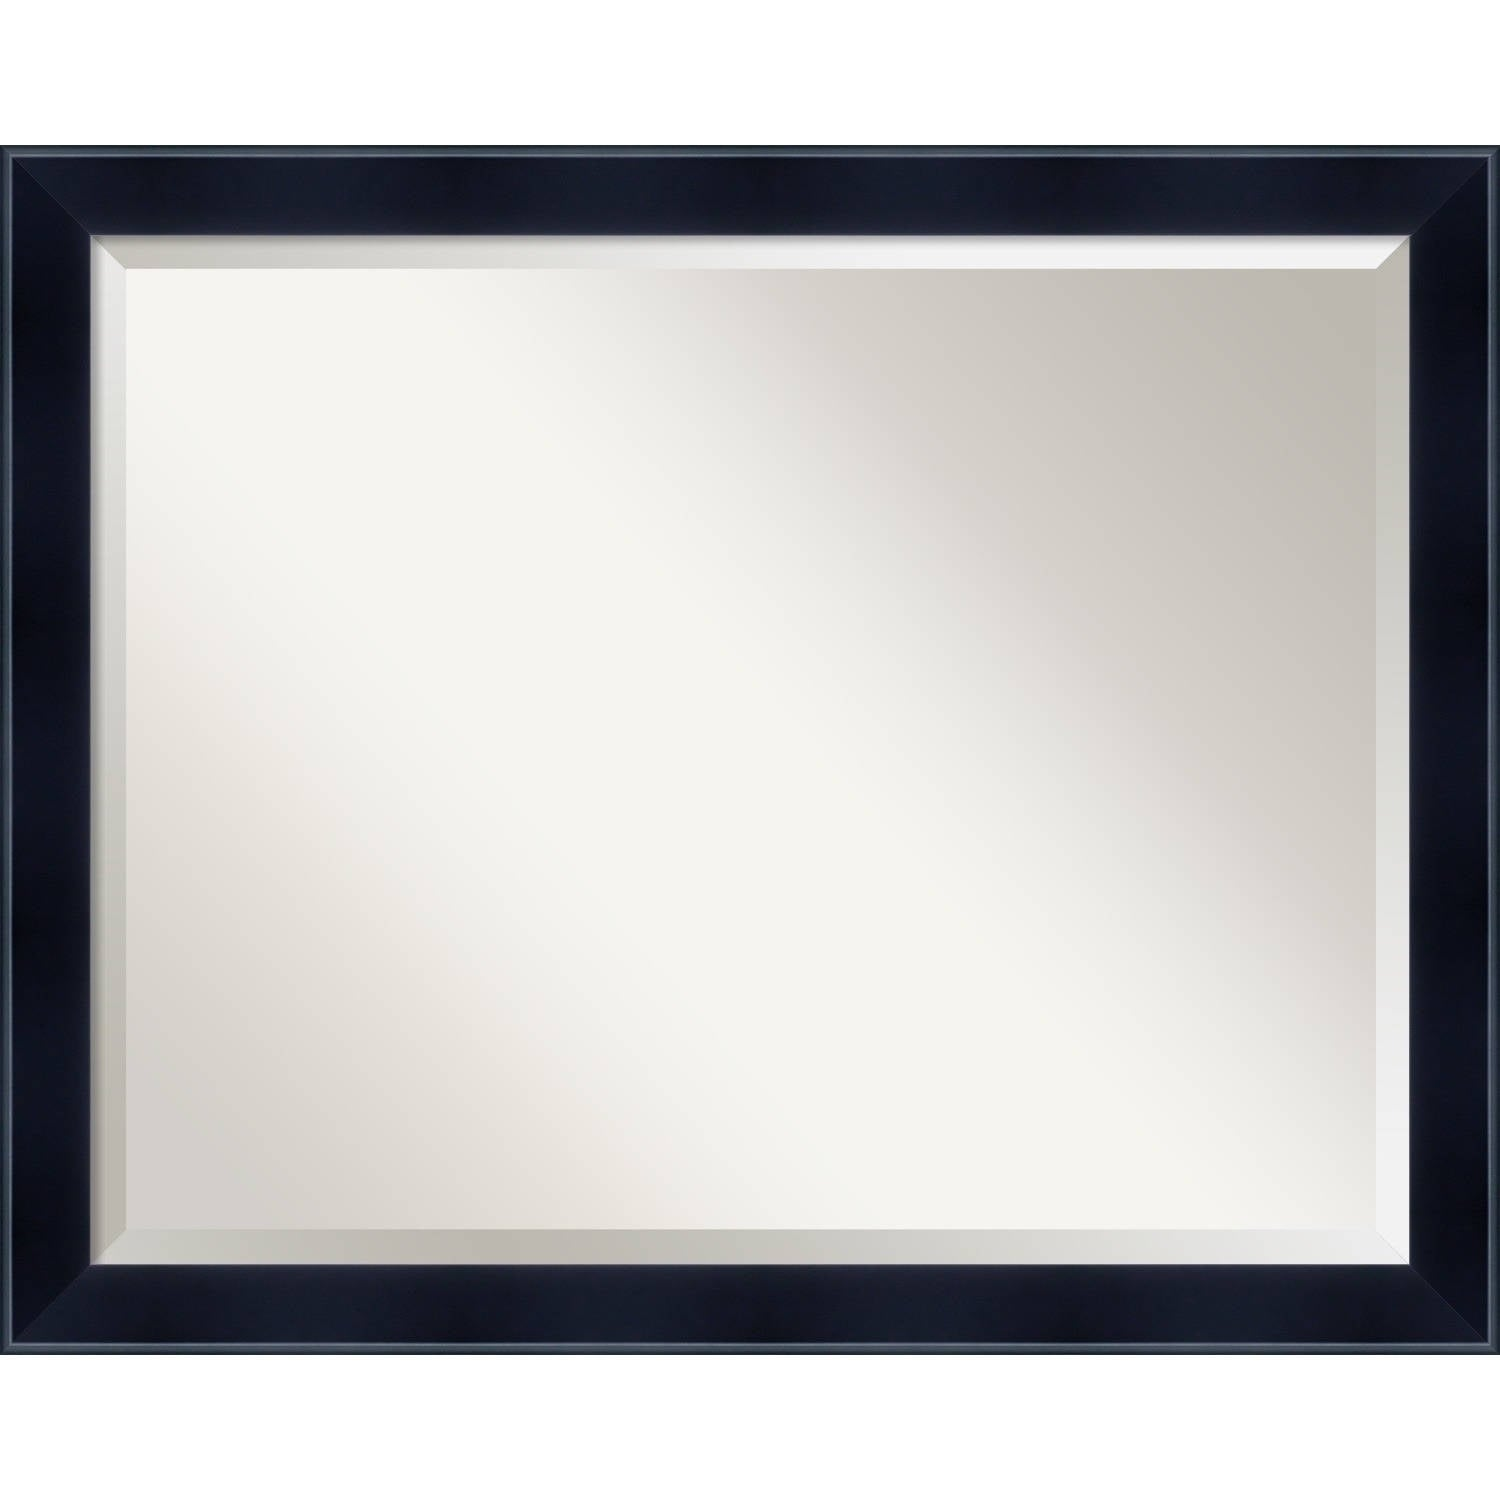 Wall Mirror Large, Madison Black 31 x 25-inch - large - 31 x 25-inch